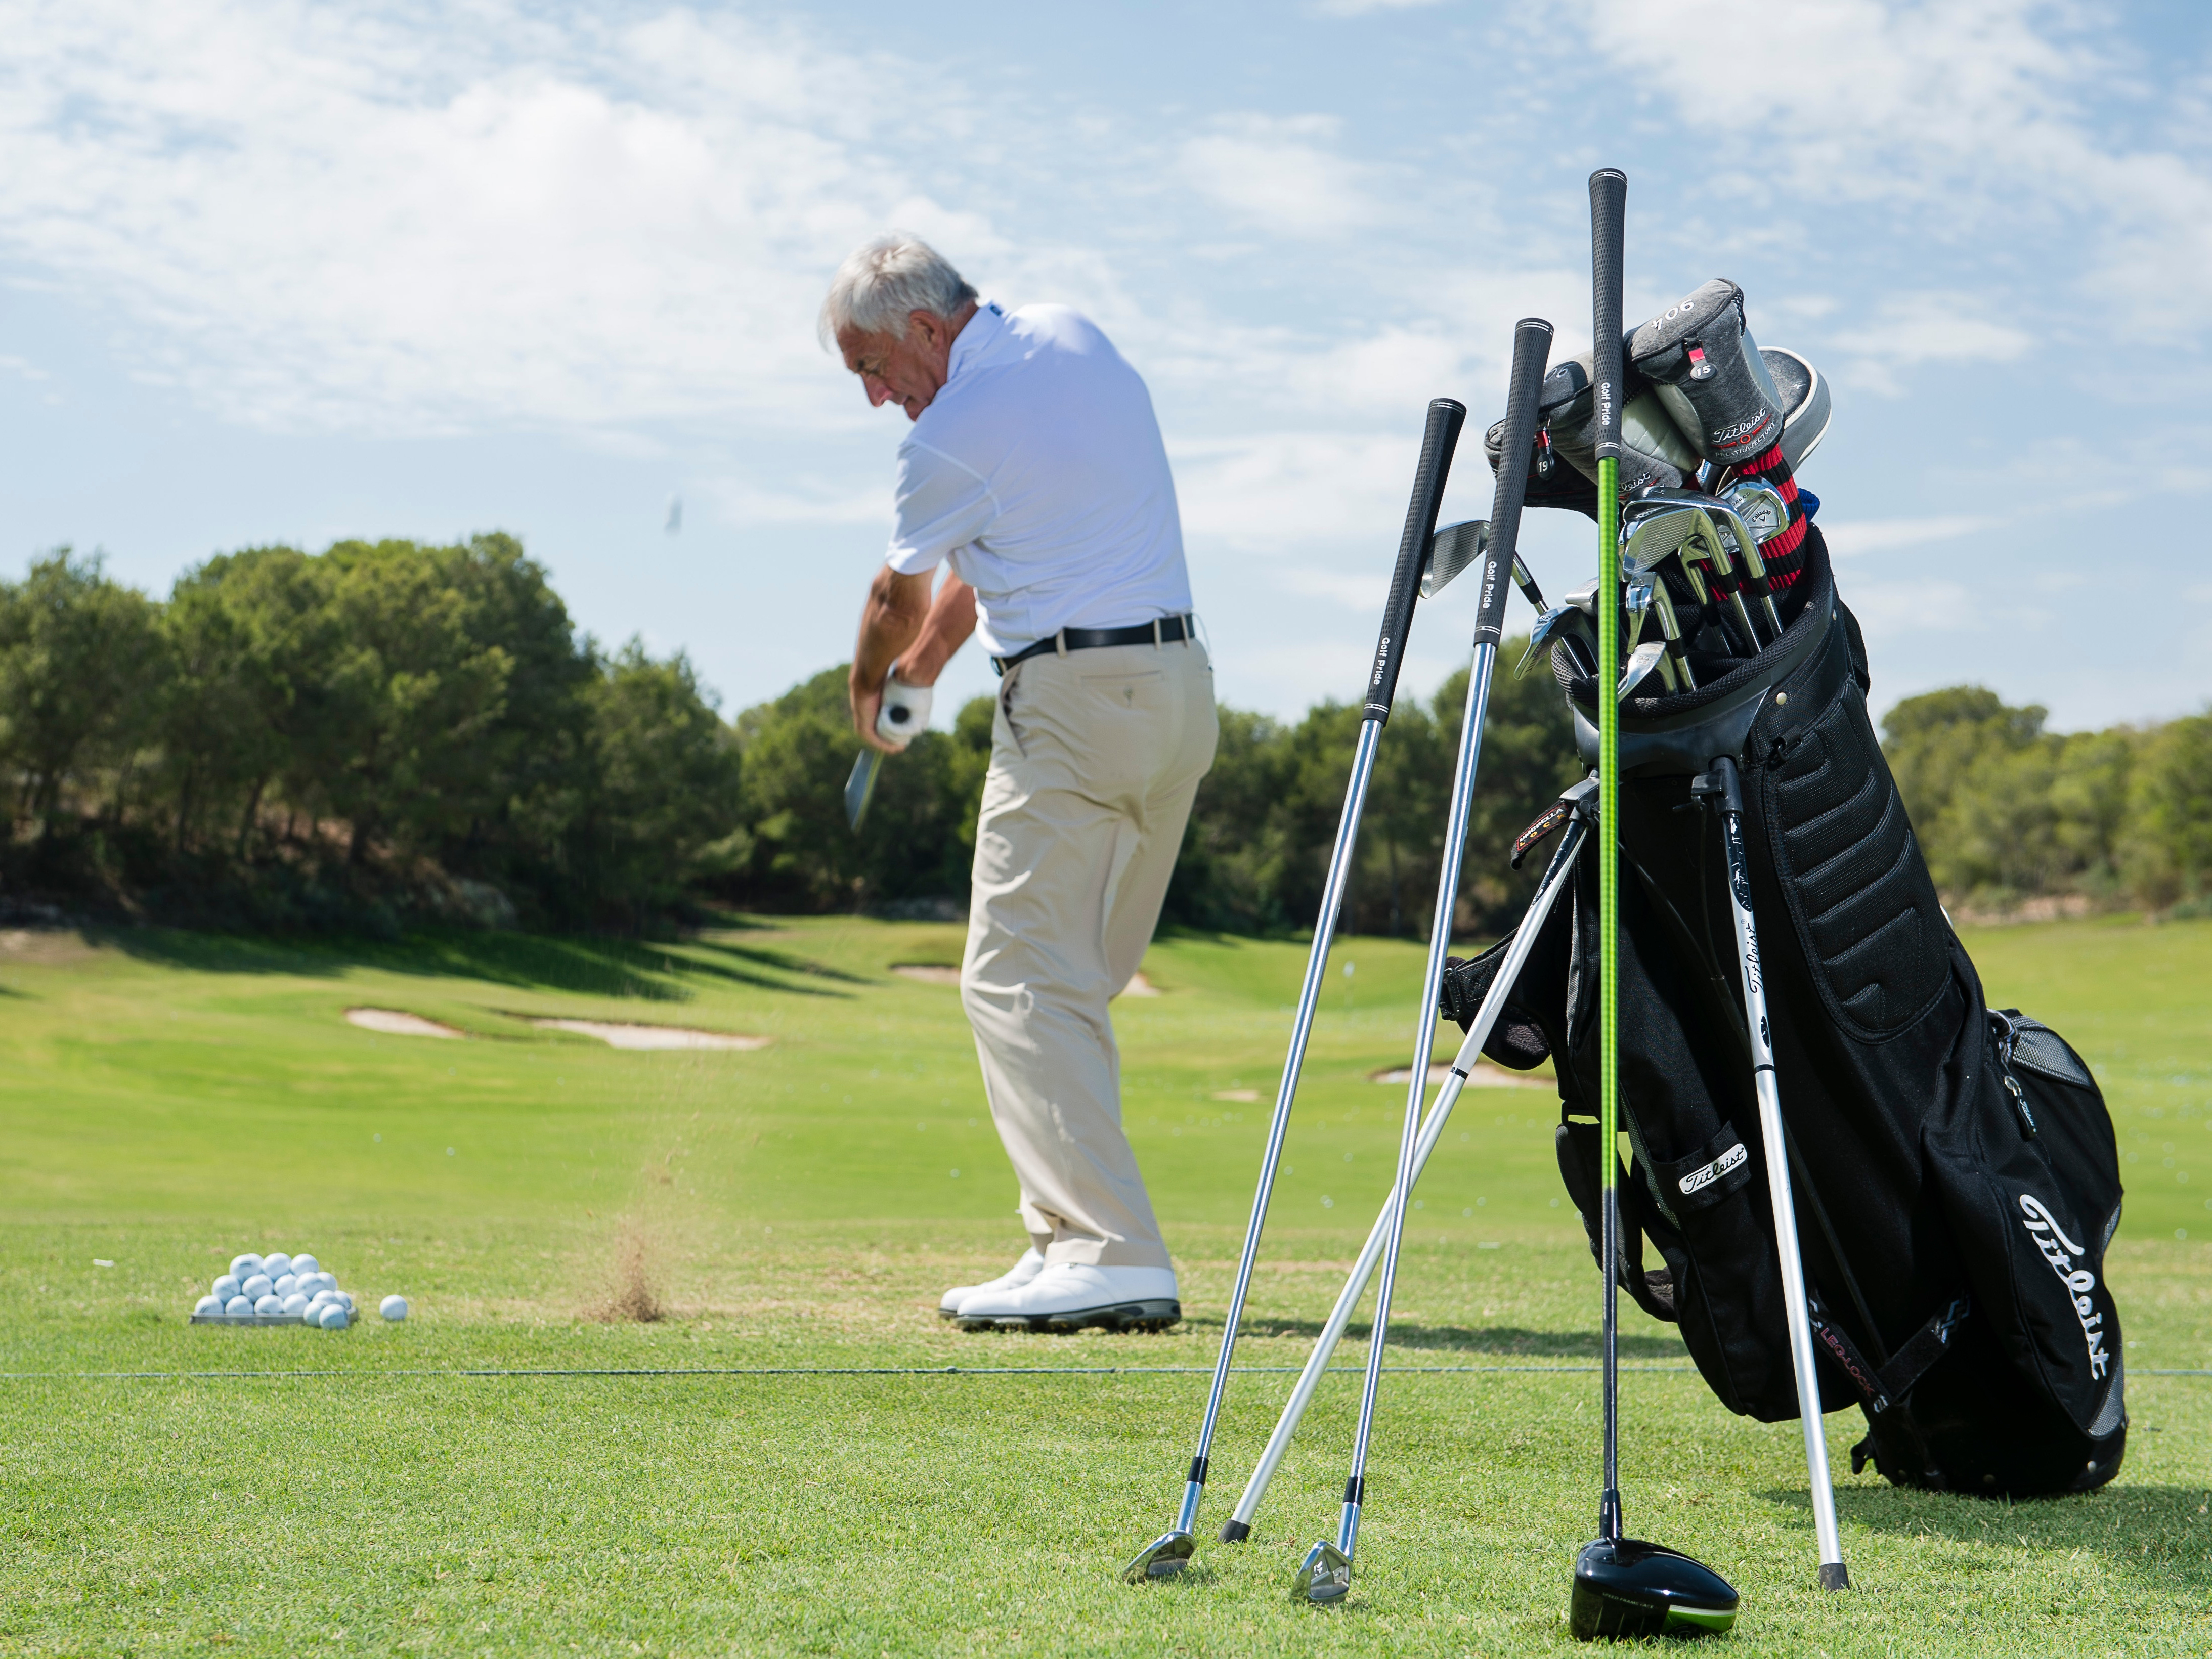 Golf Deals Uk >> The Importance Of The Pre-Round Warm-Up - Golf Monthly